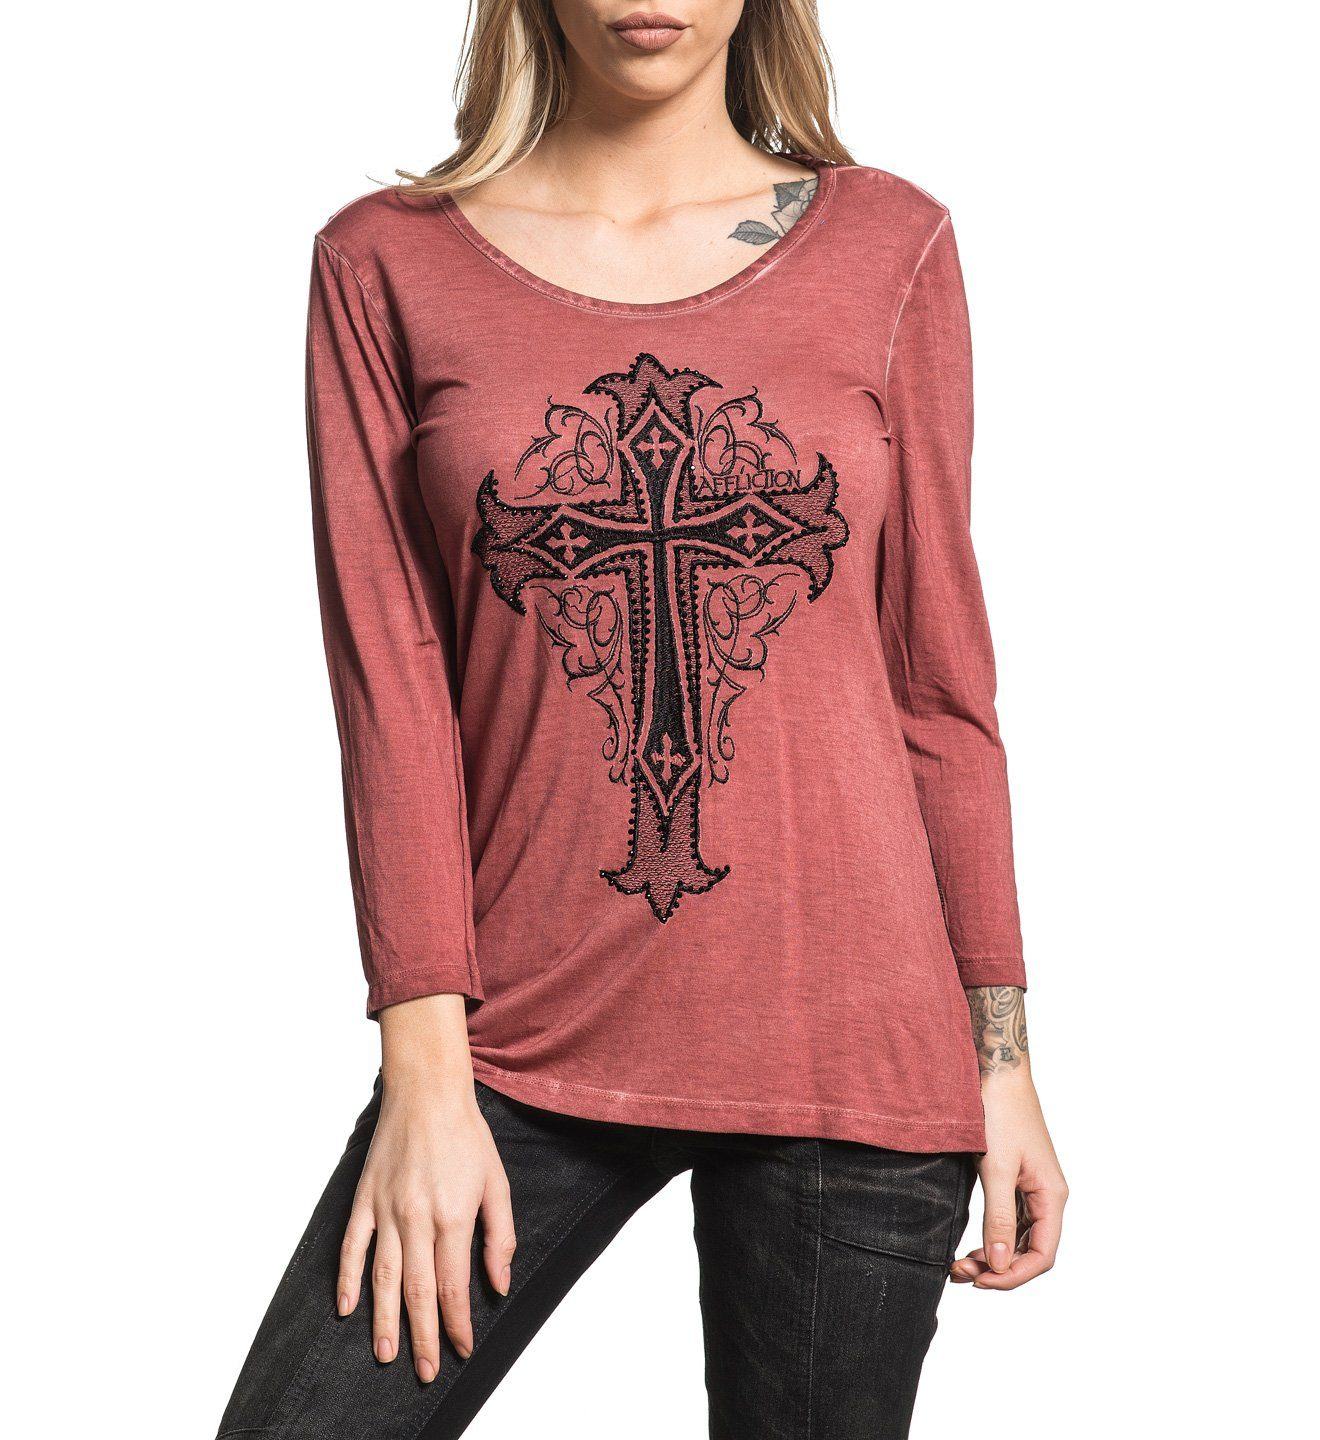 Isabella 3/4 Scoop - Womens Long Sleeve Tees - Affliction Clothing